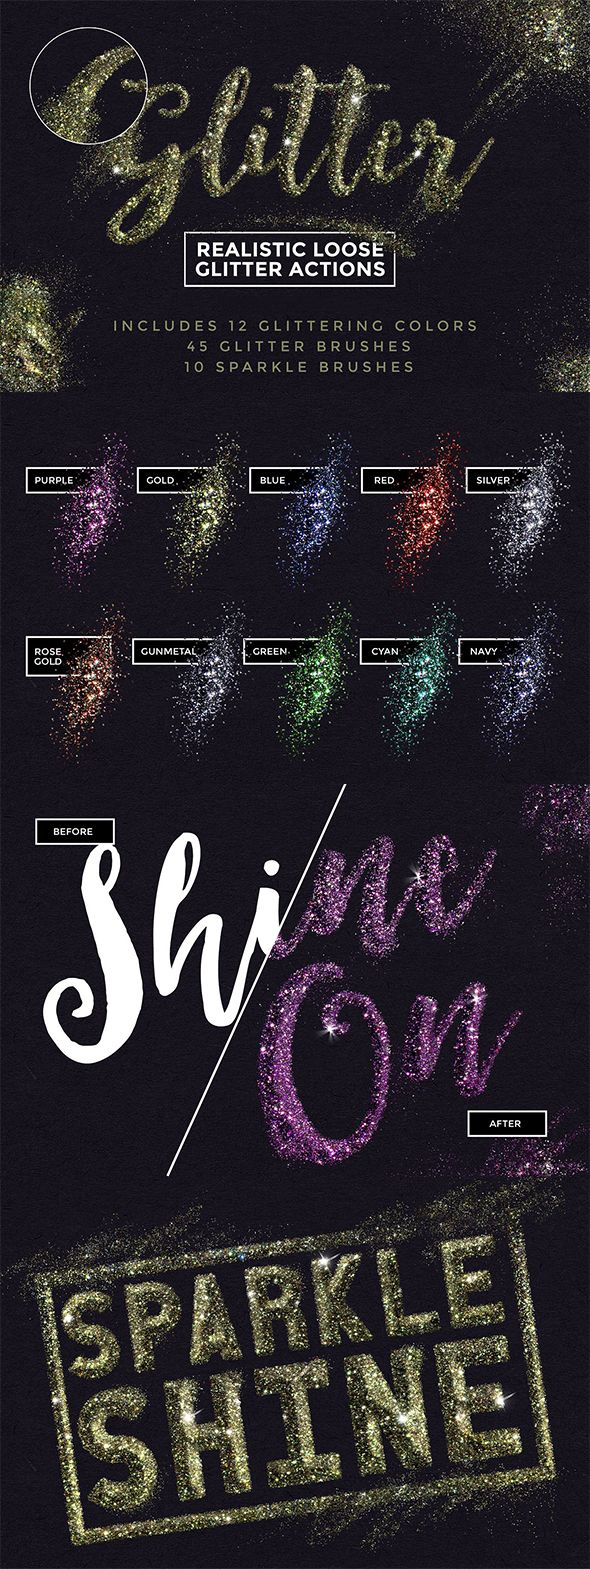 how to give text a glittery effect